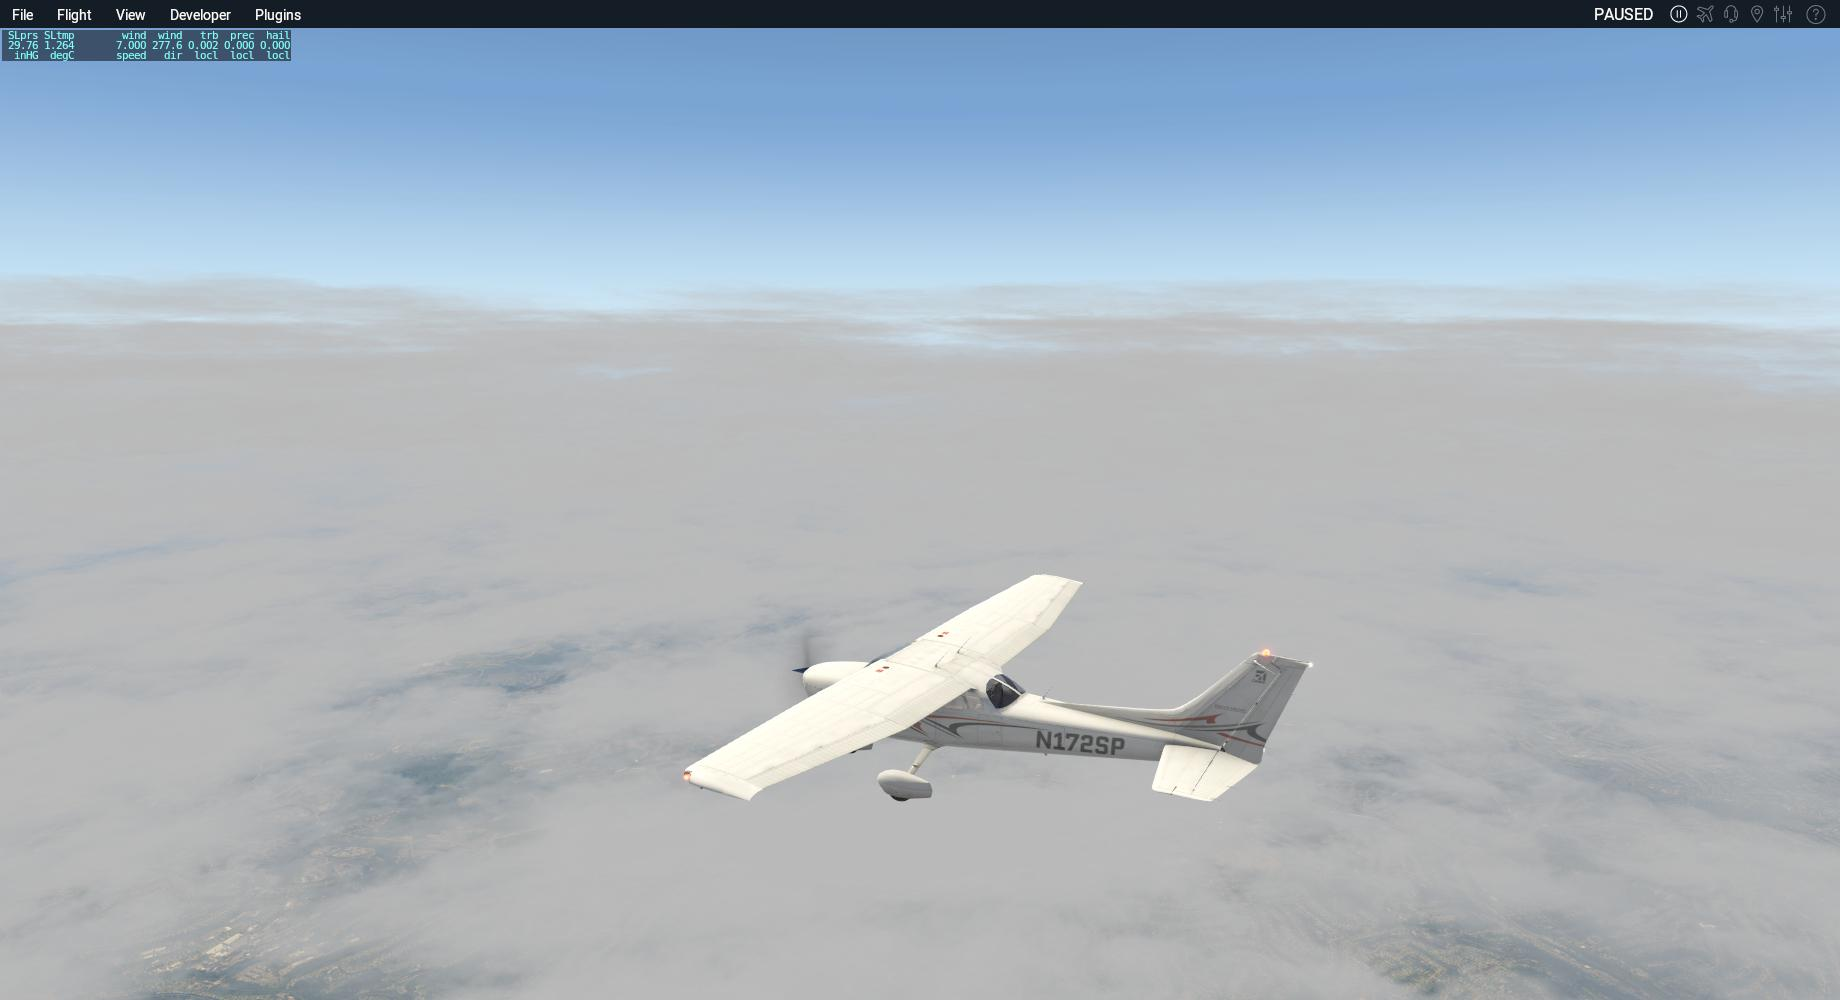 X-Plane 10: Clouds & Datarefs - Questions - Page 8 - The X-Plane